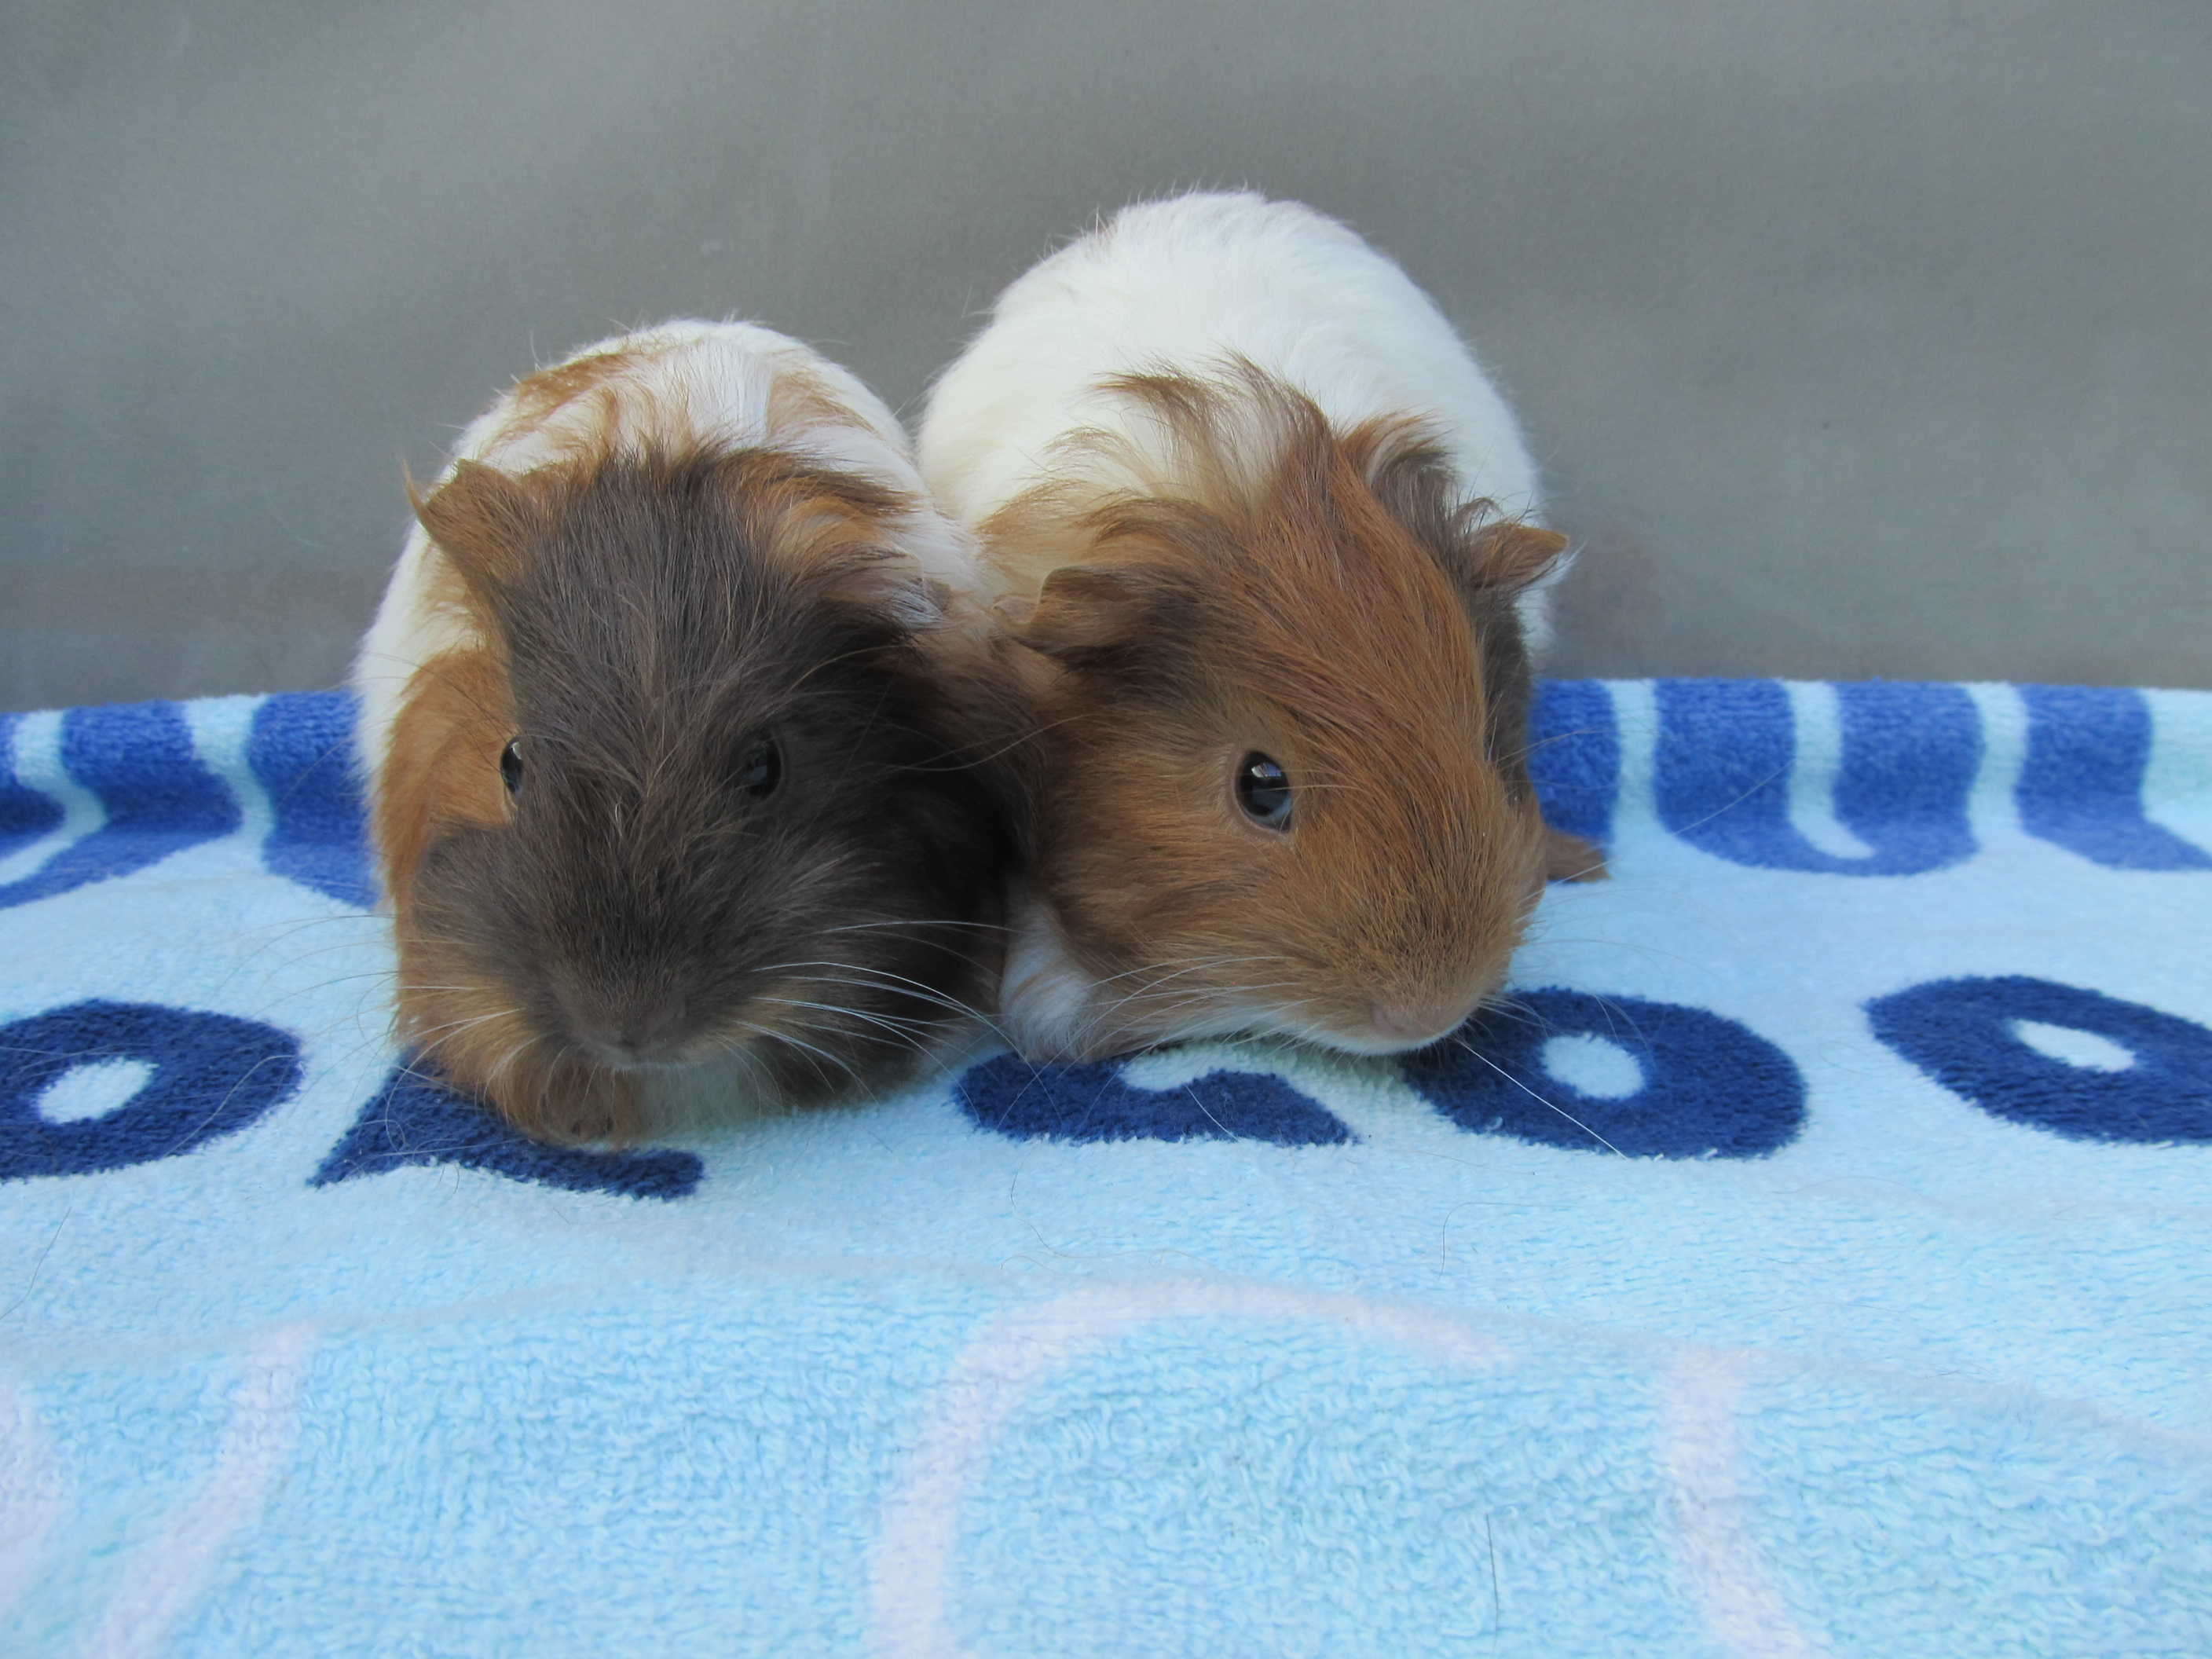 Coco & Caramel (were Pickles & Piper) Sept 24 2015